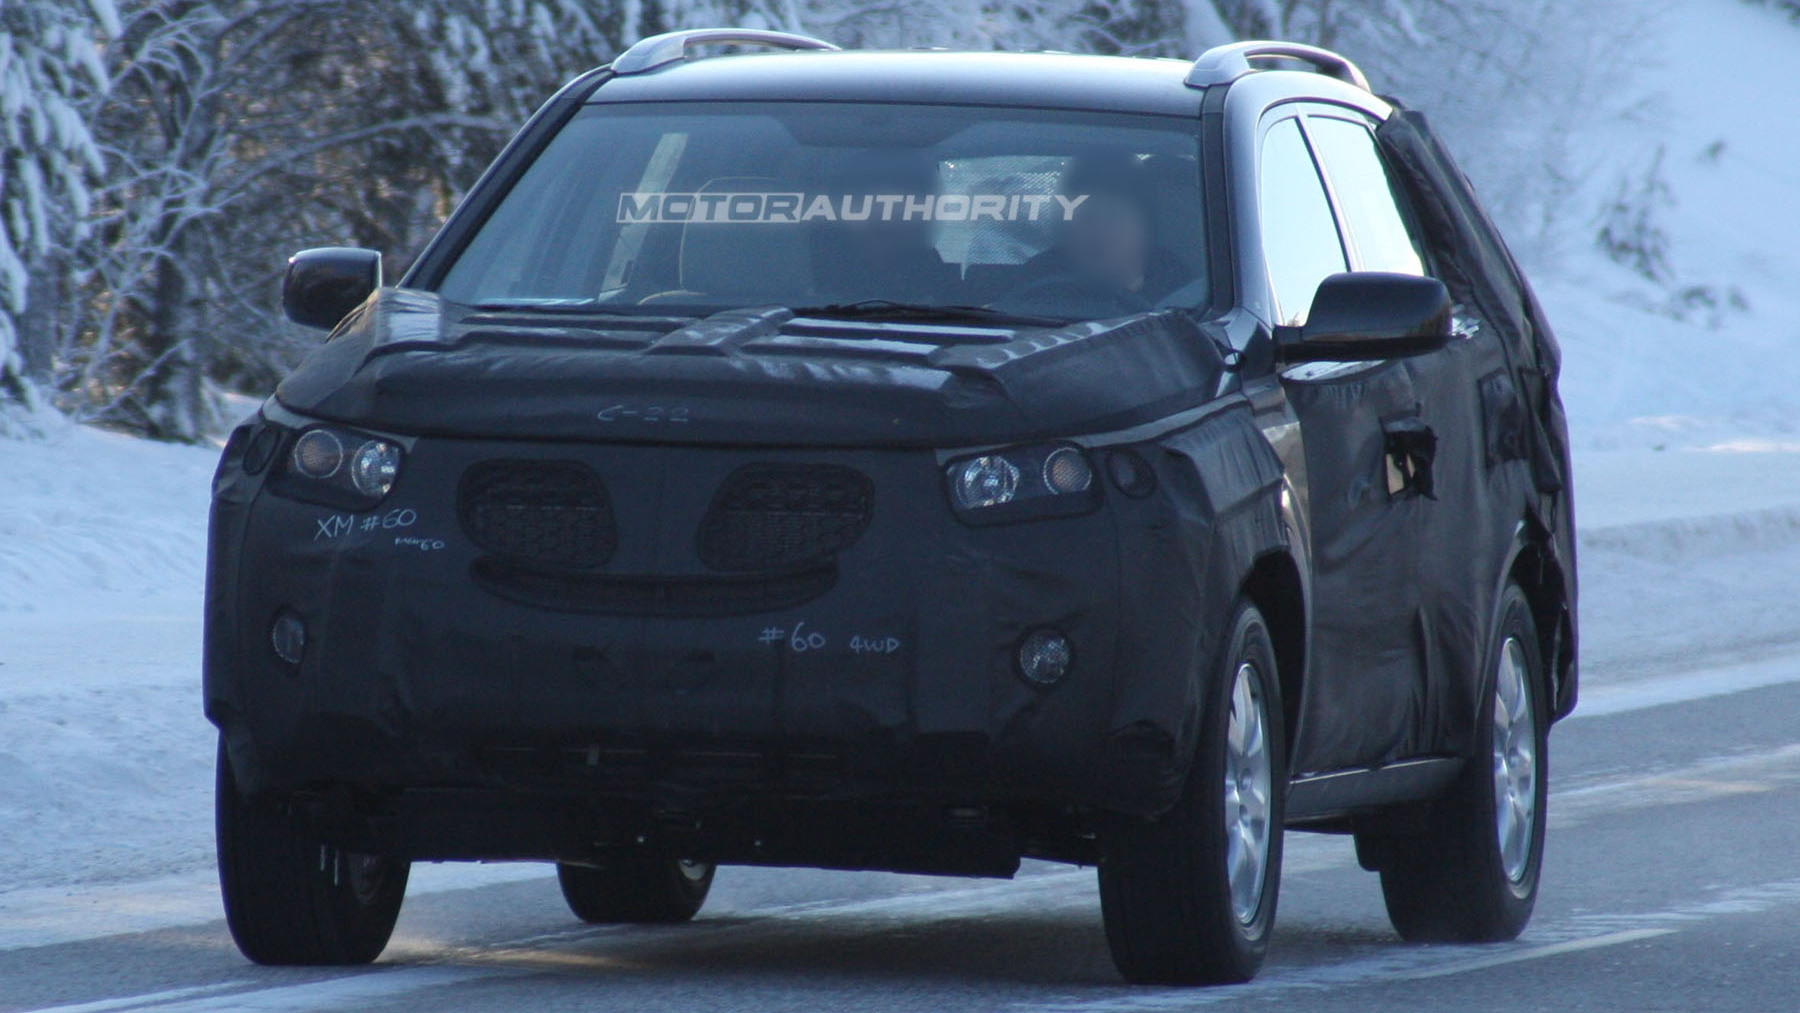 2010 kia sorento spy shots february 002